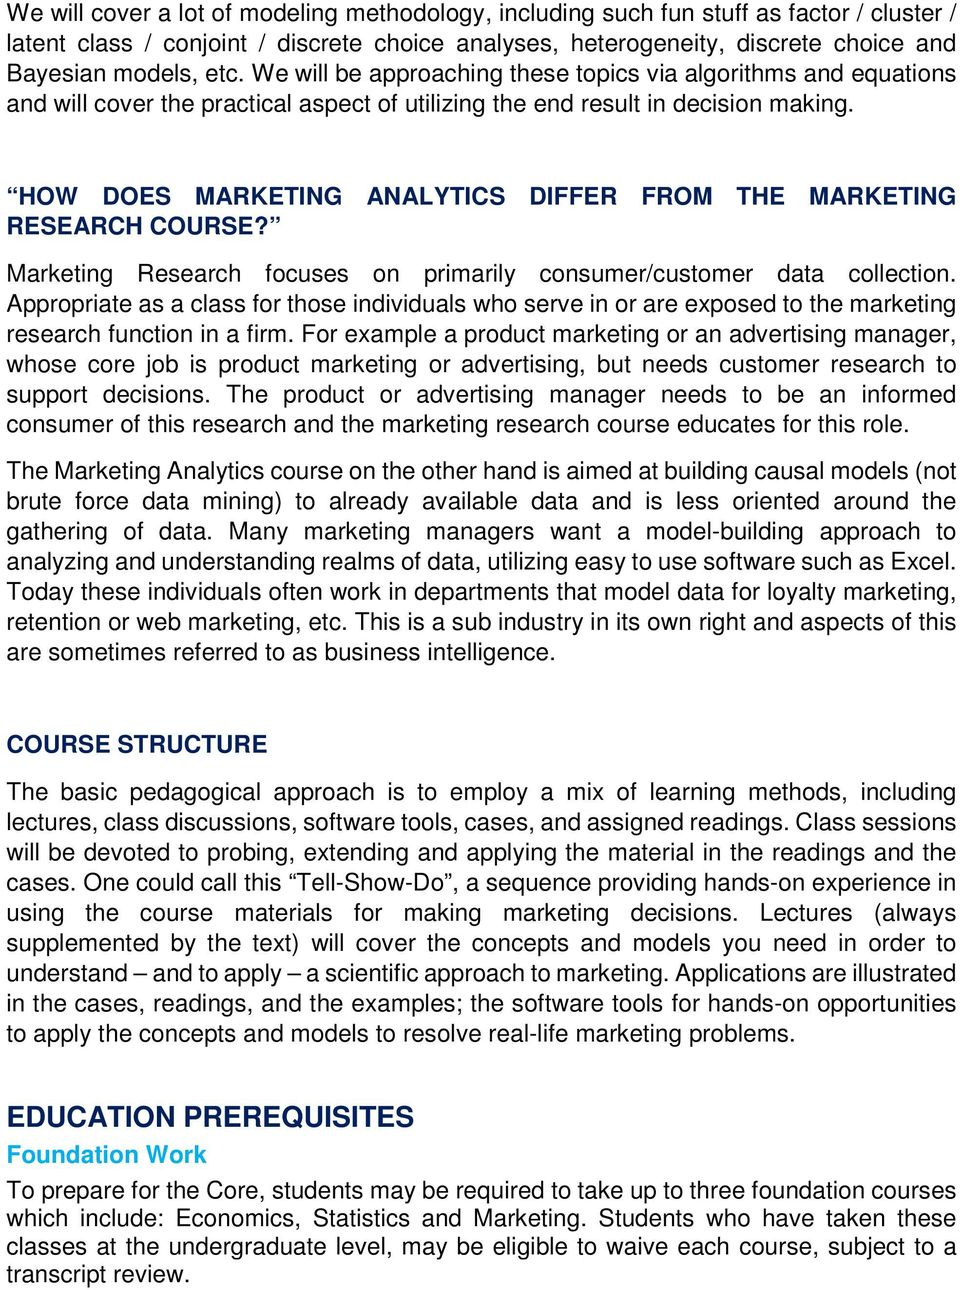 HOW DOES MARKETING ANALYTICS DIFFER FROM THE MARKETING RESEARCH COURSE? Marketing Research focuses on primarily consumer/customer data collection.